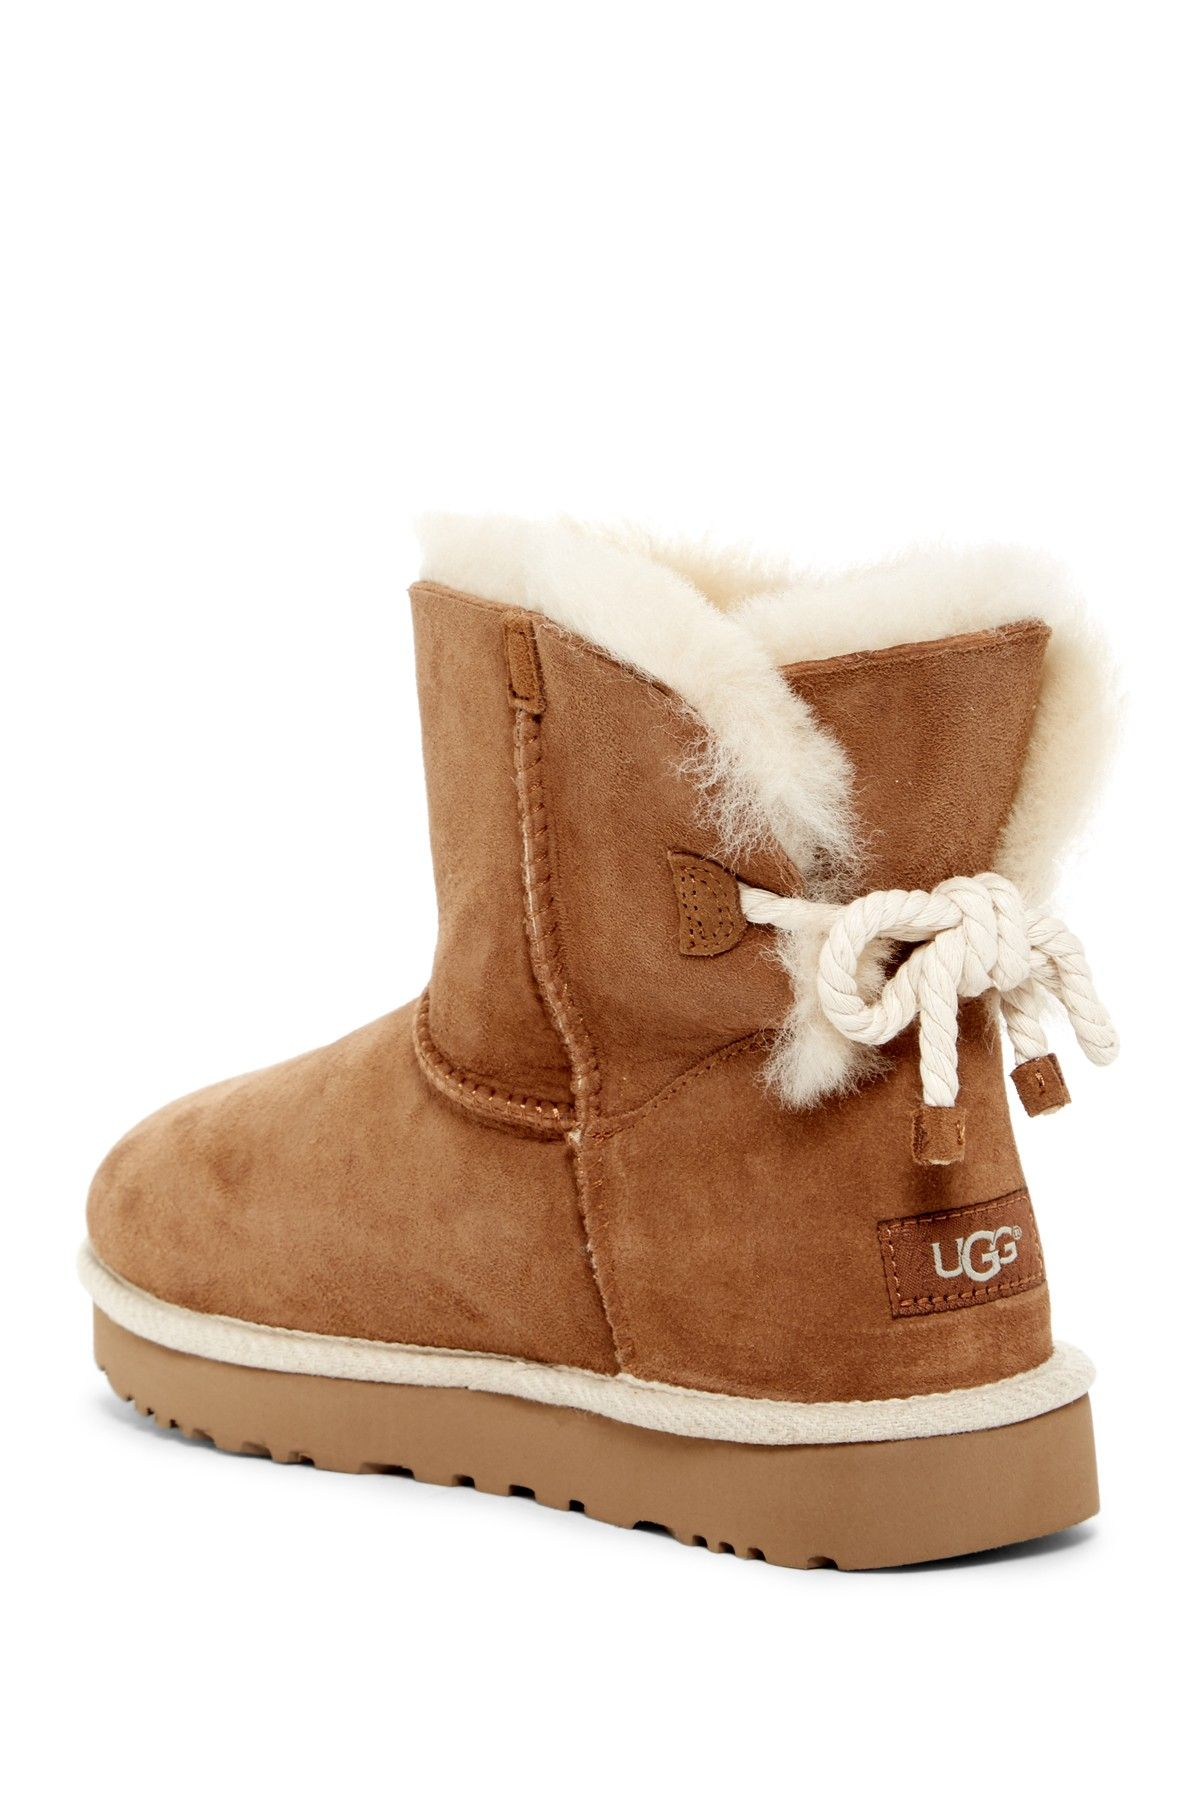 651979427a6 Selene UGGpure(TM) Lined Boot in 2019 | Fashion & Accessories | Uggs ...